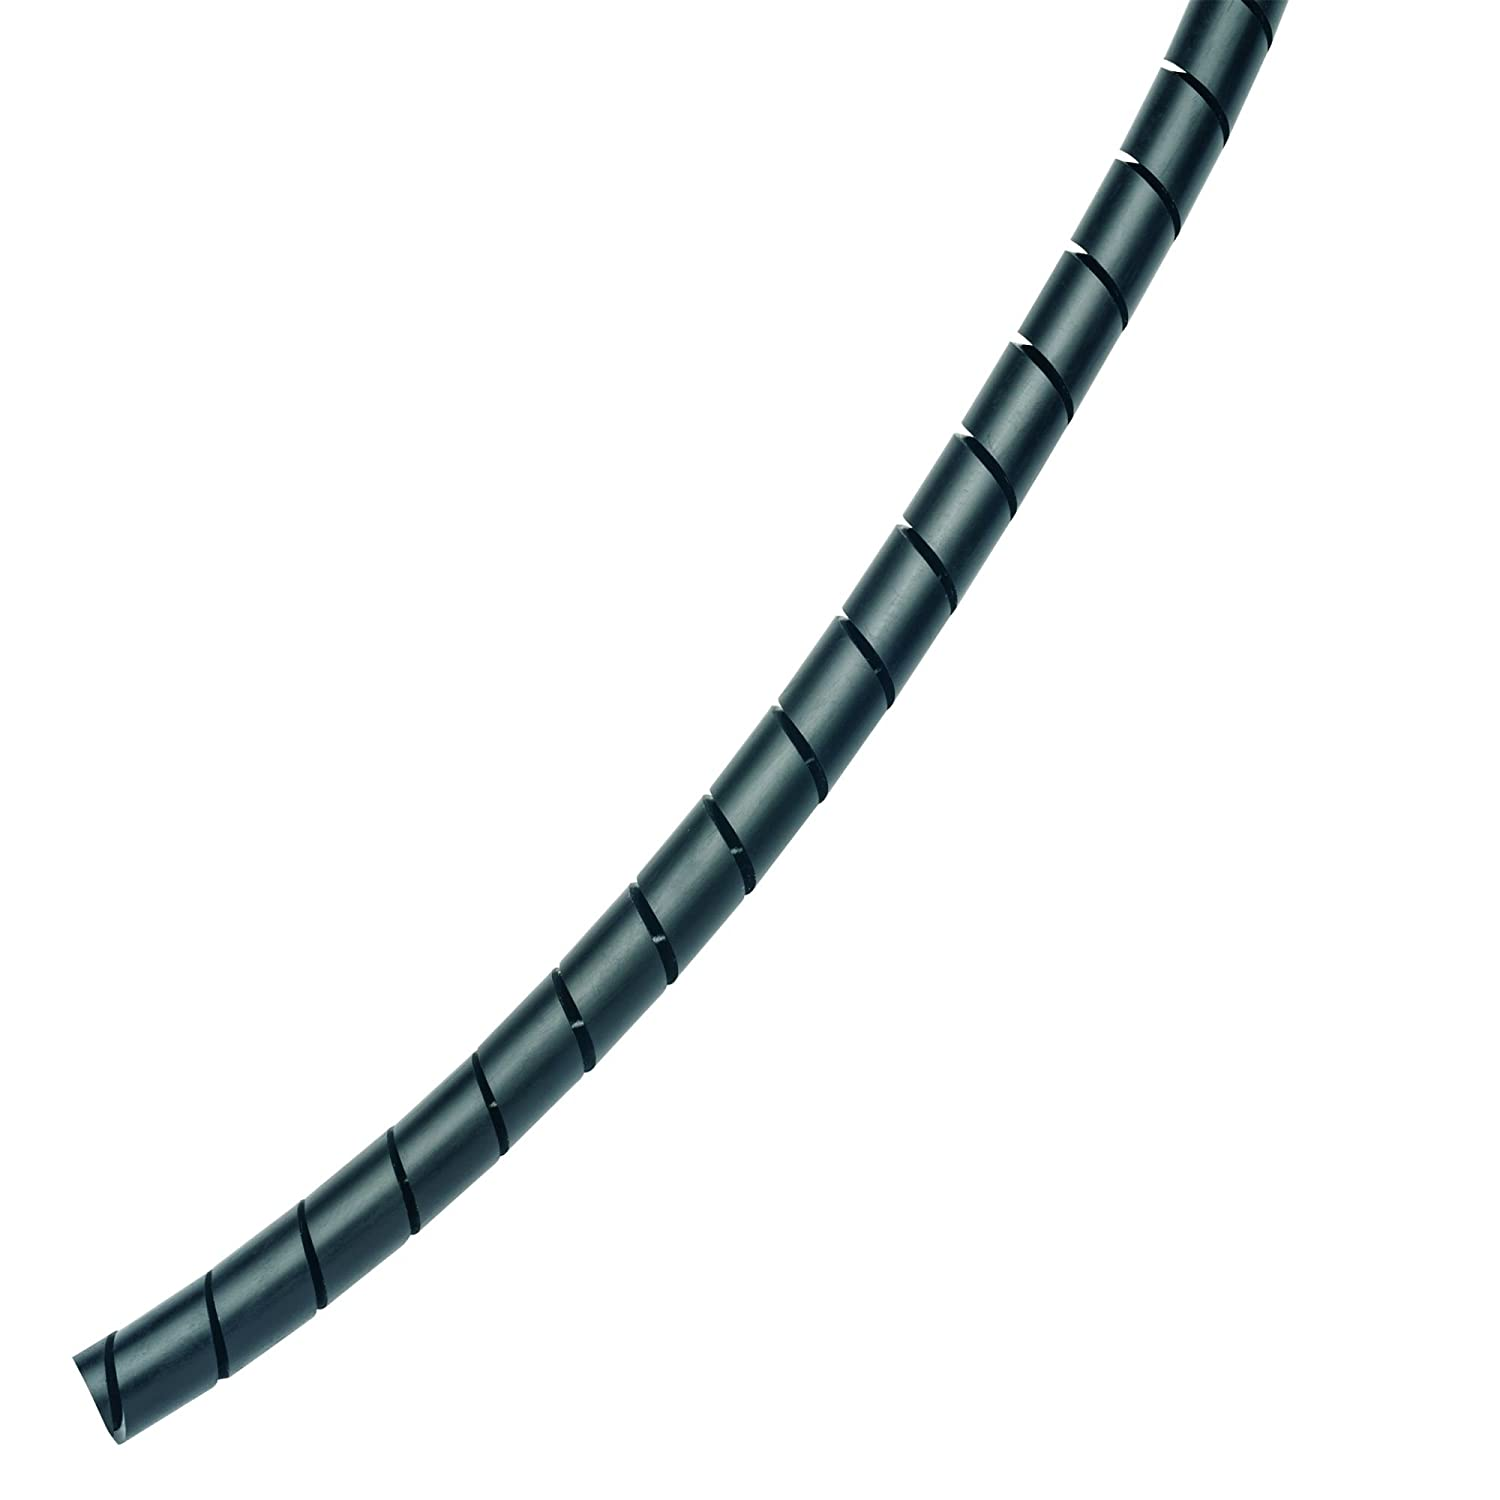 Image of Panduit T50F-C0 Weather Resistant Polyethylene Spiral Wrap, 100-Feet, Black Circular Connectors